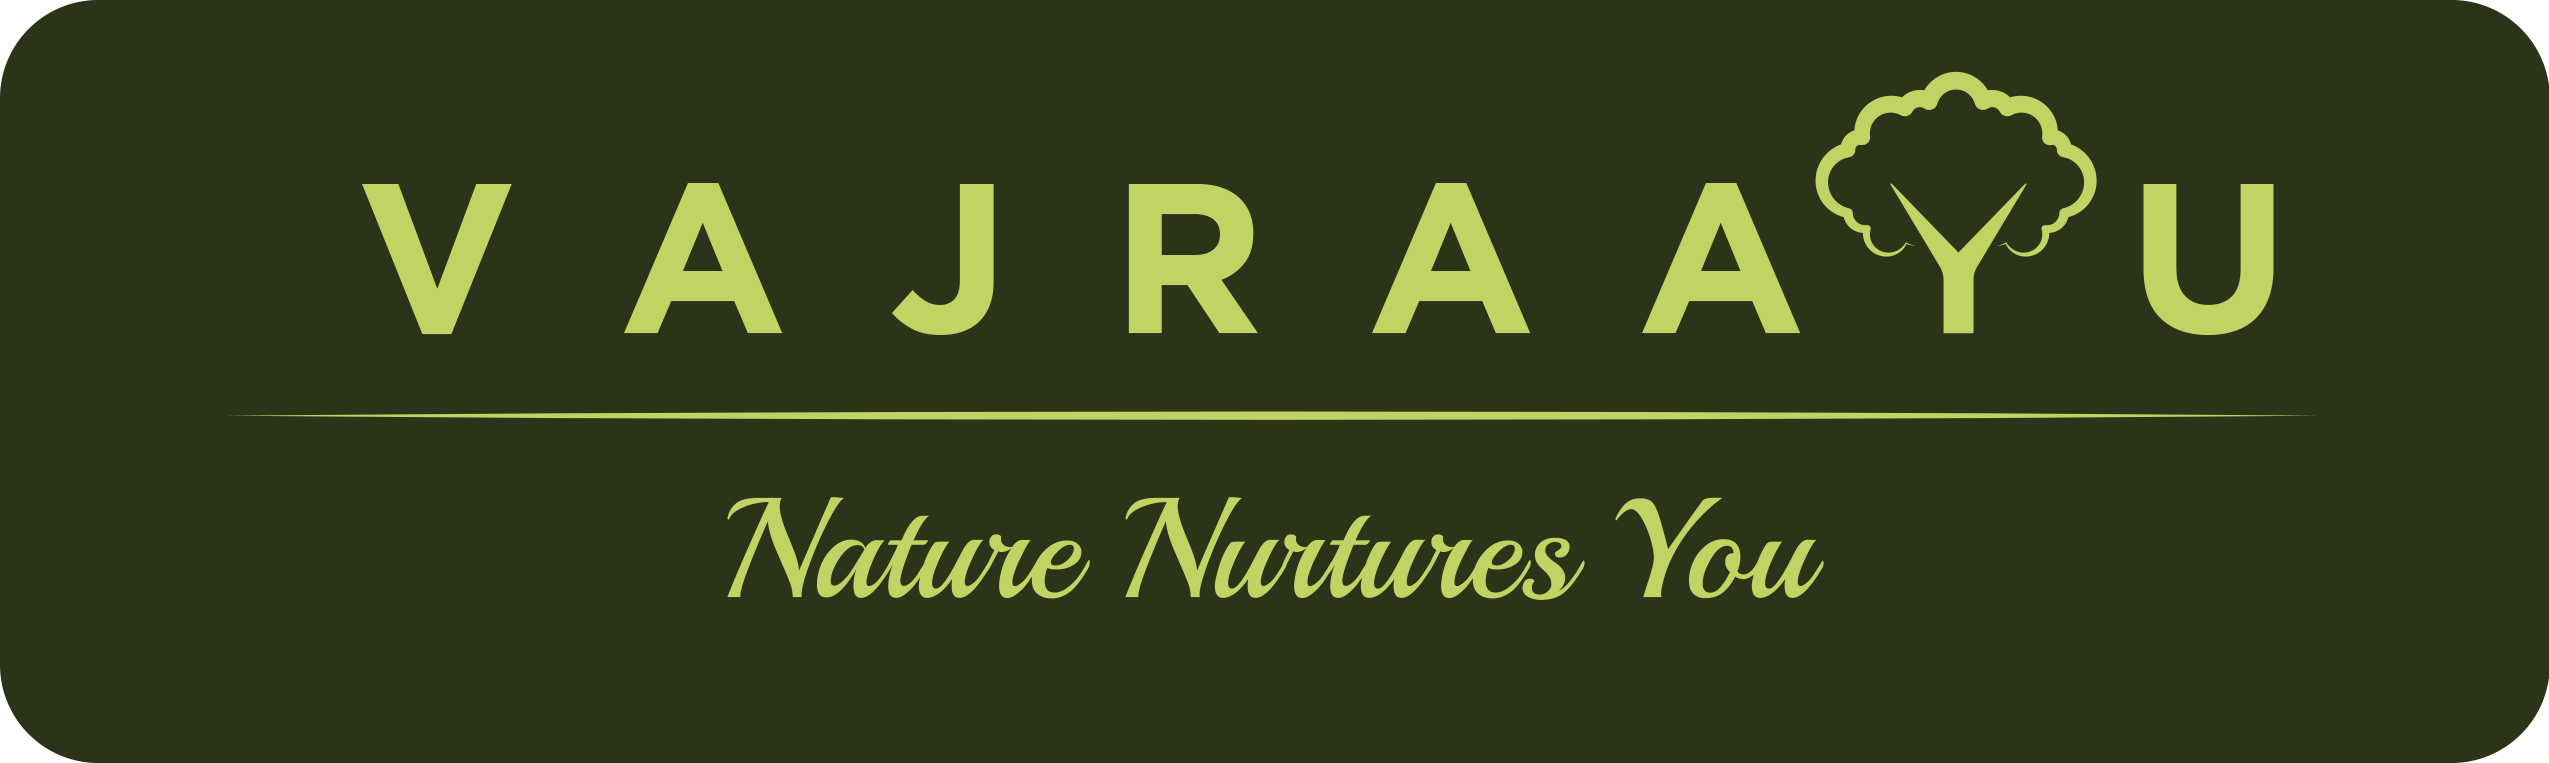 Online Ayurvedic Store-Authentic ayurvedic products-Vajraayu